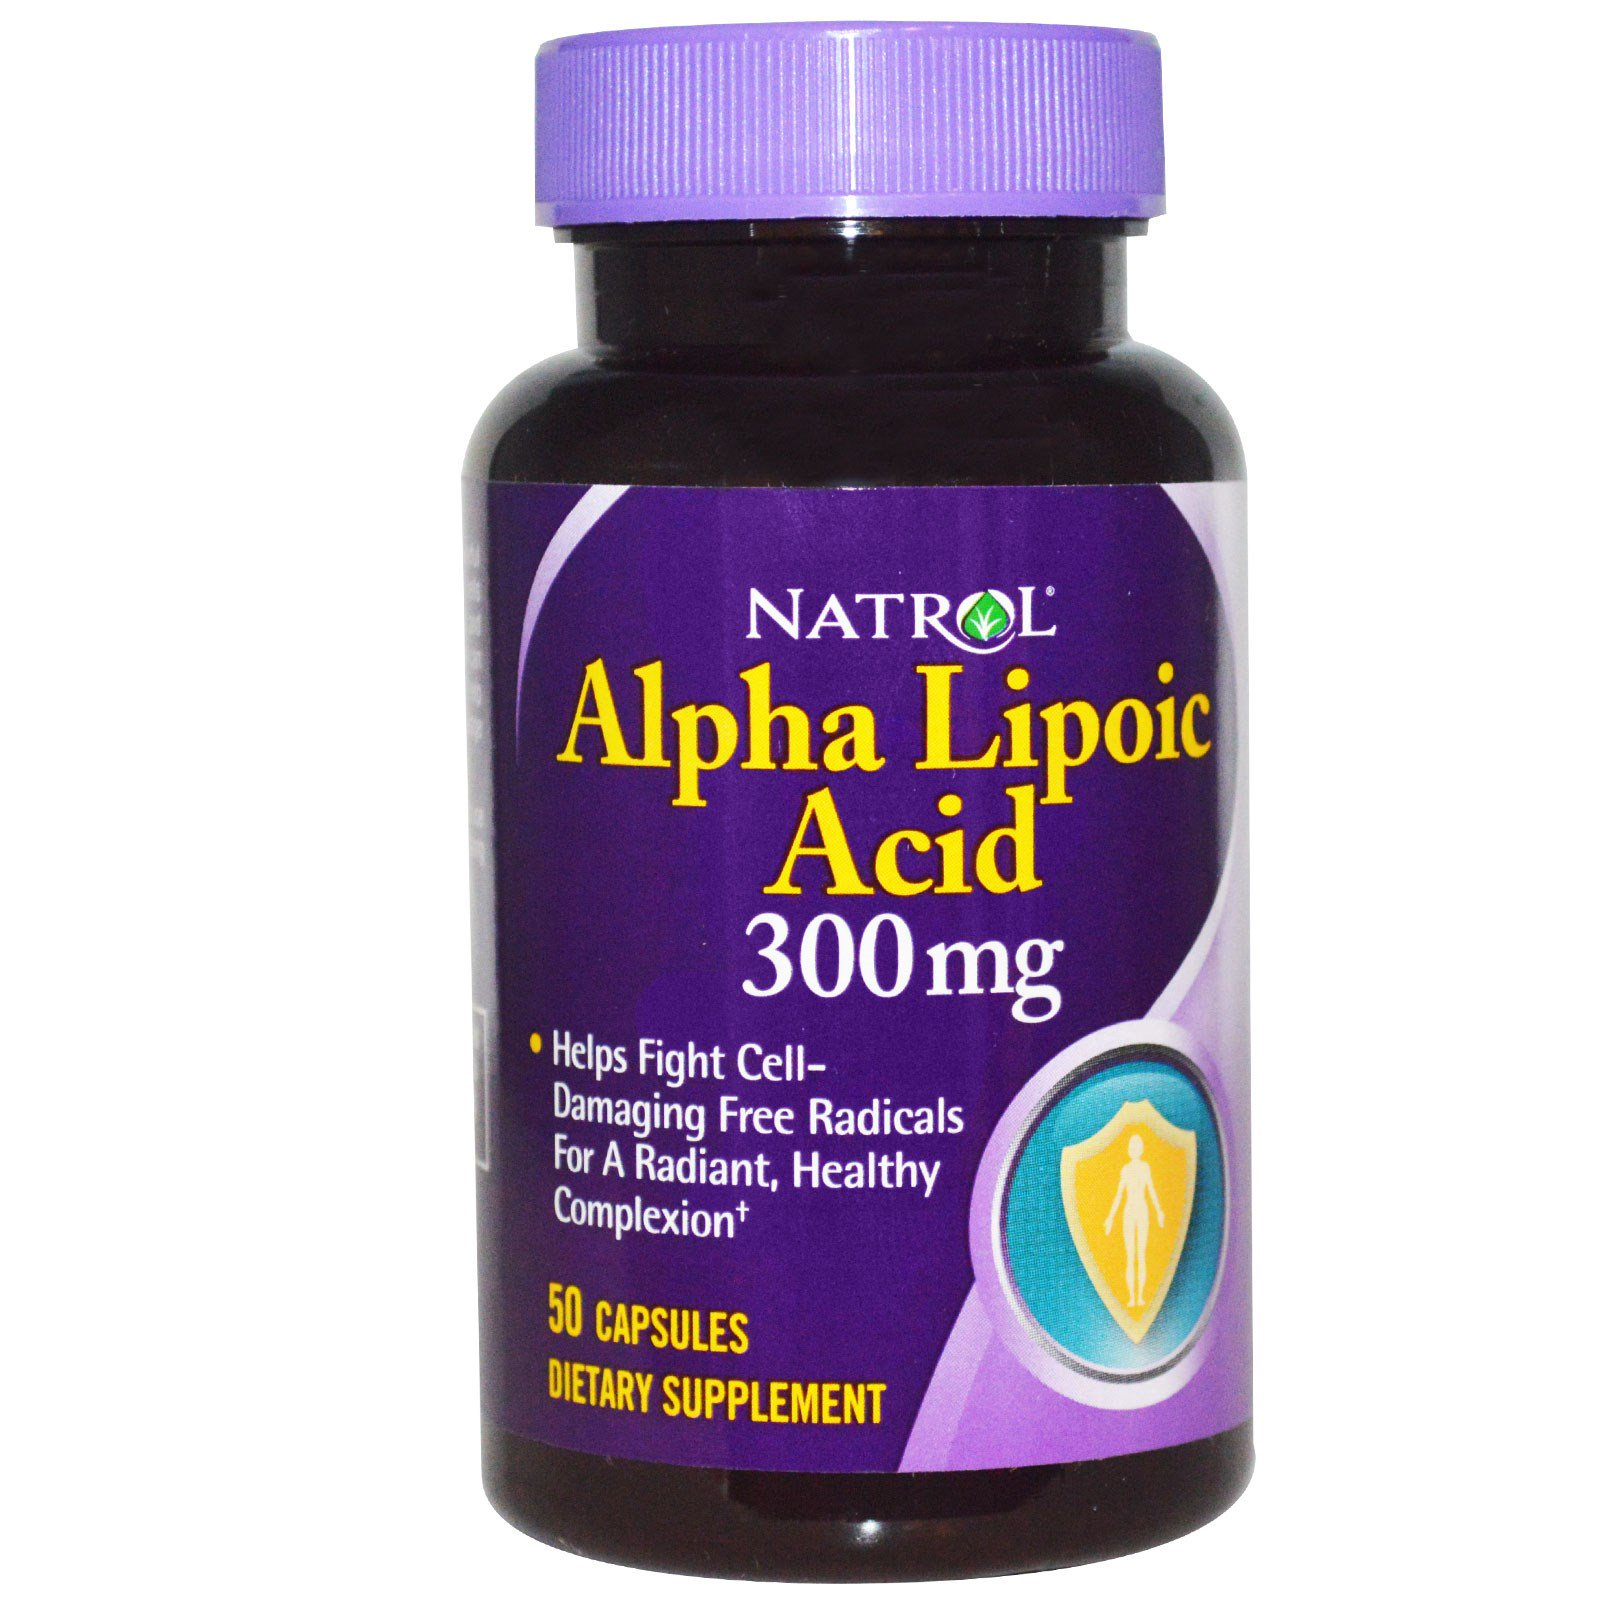 Alpha lioic acid